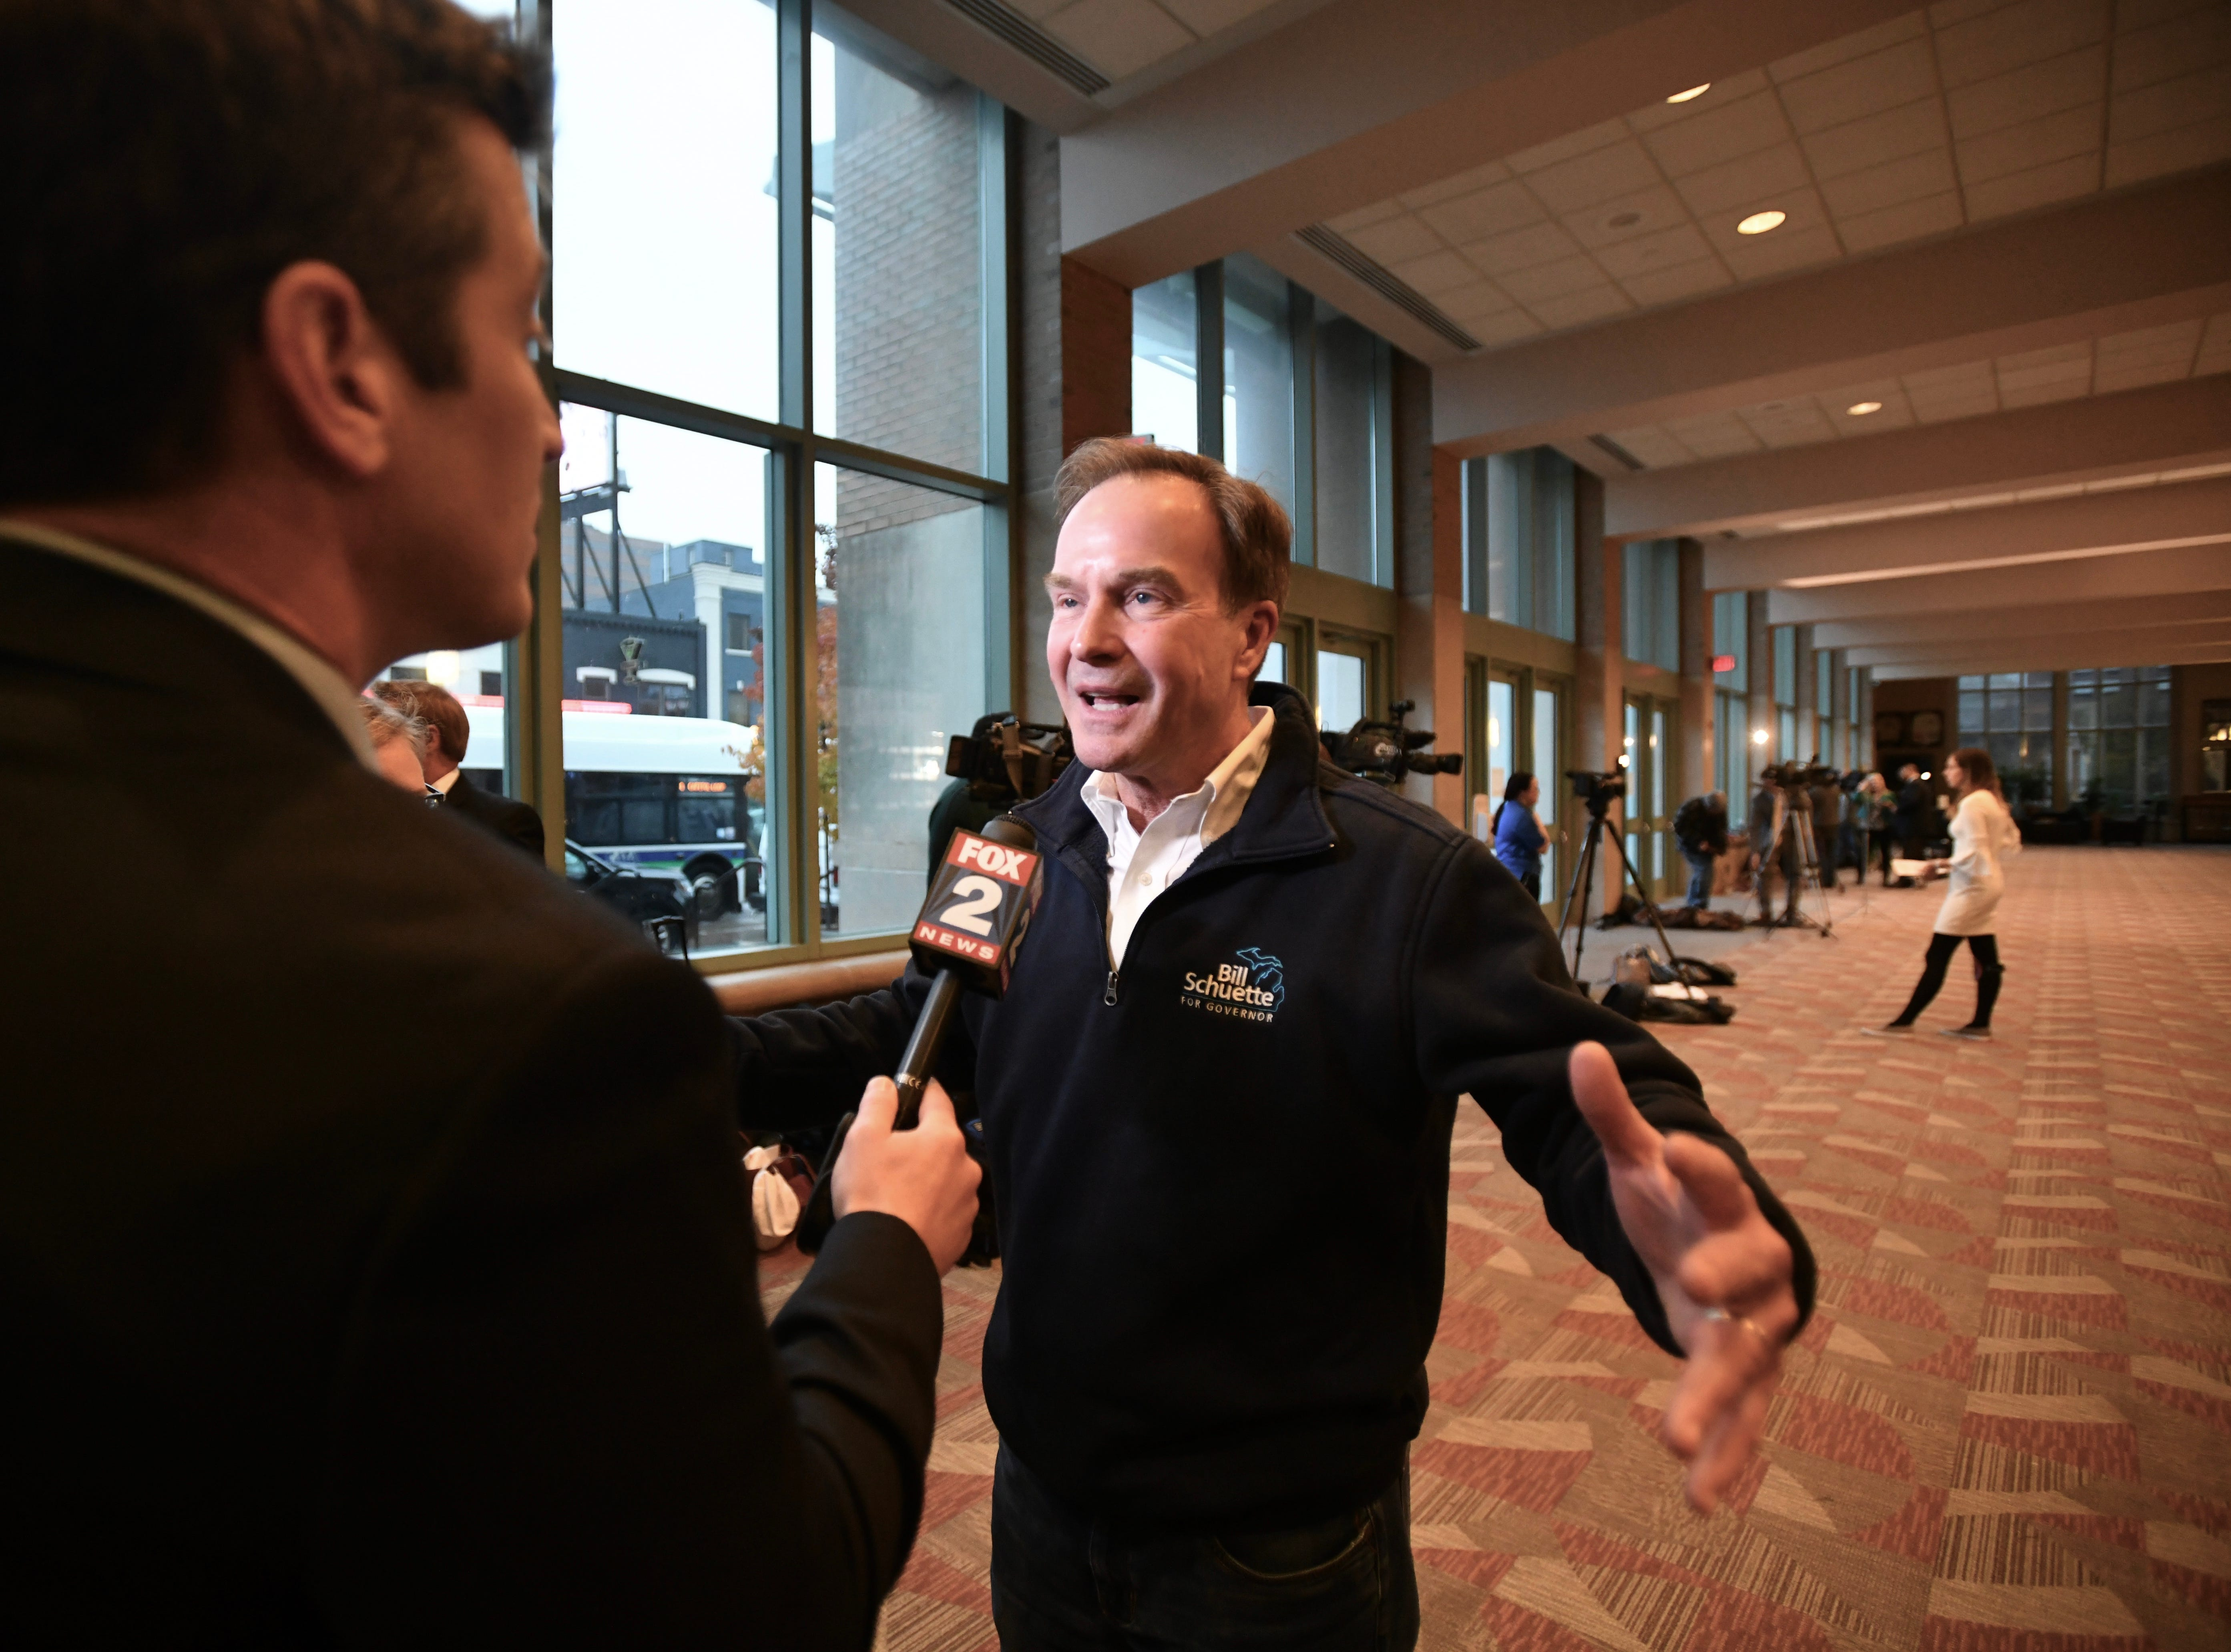 Bill Schuette talks with a TV reporter at the Lansing Center on Tuesday evening before the GOP election night party on November, 6, 2018.